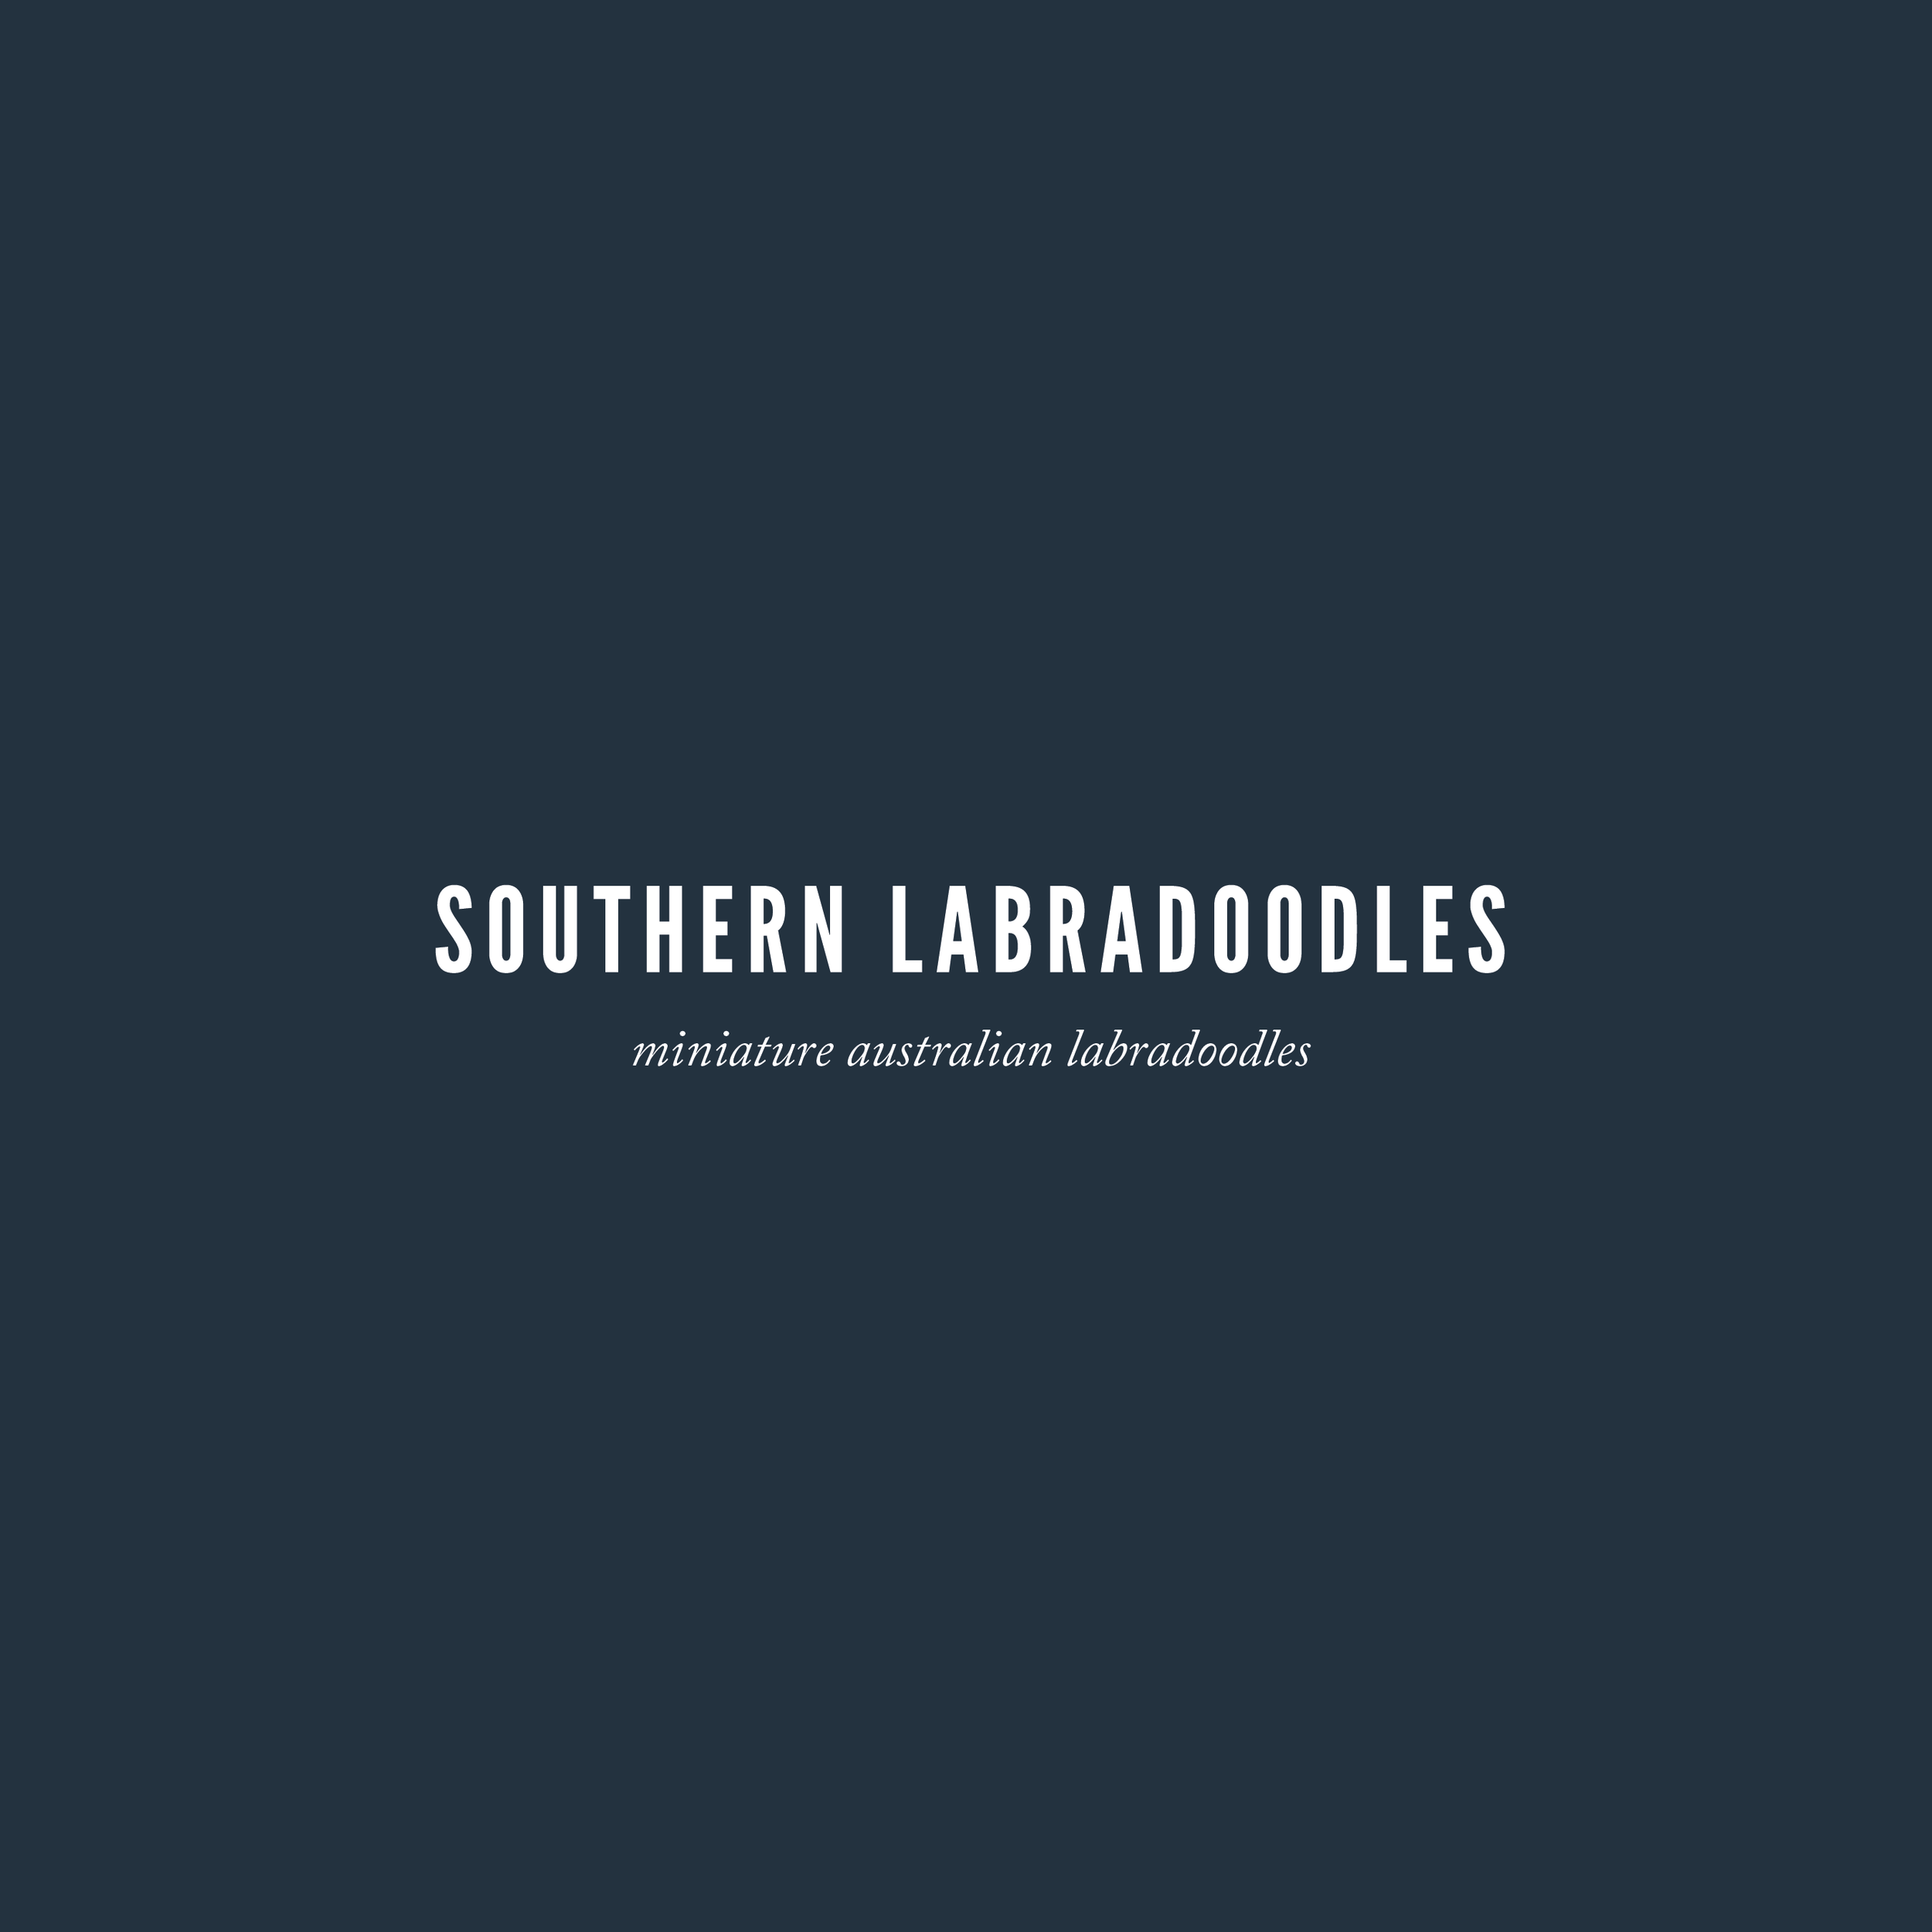 Updated Southern Labradoodles Brand Book-01.png